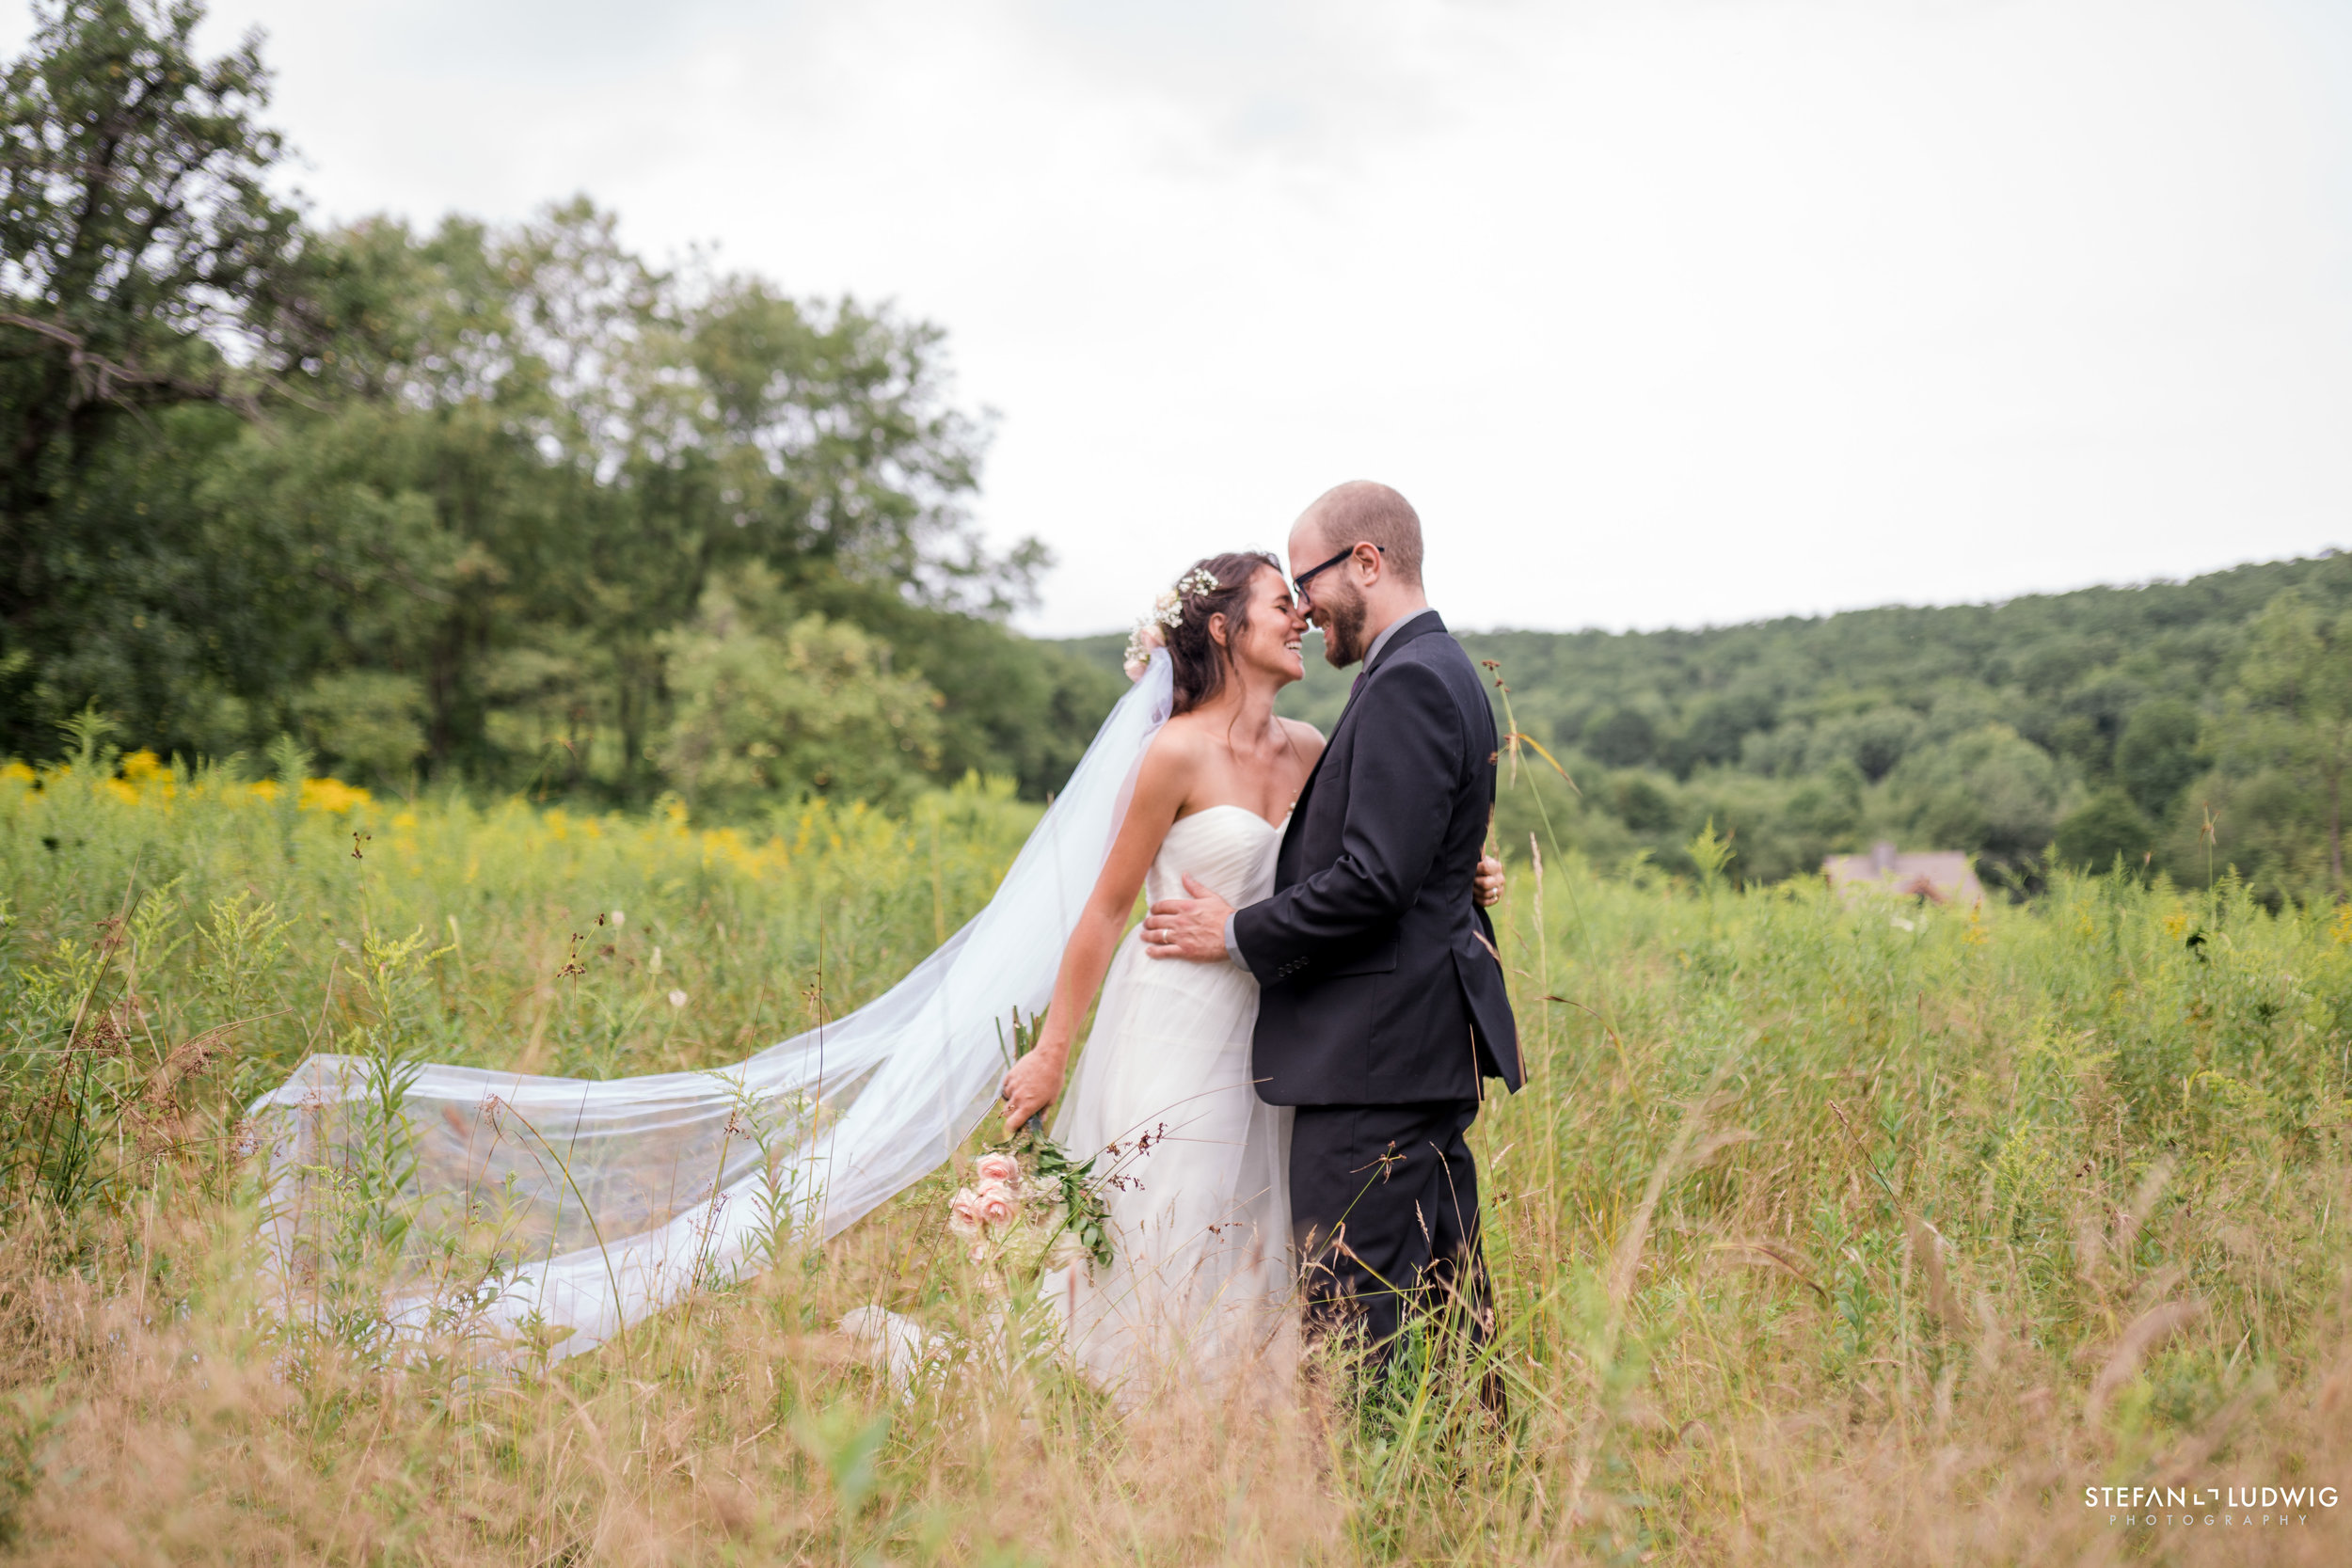 Blog Wedding Photography Mariana and John in Ellicottville NY by Stefan Ludwig Photography-38.jpg